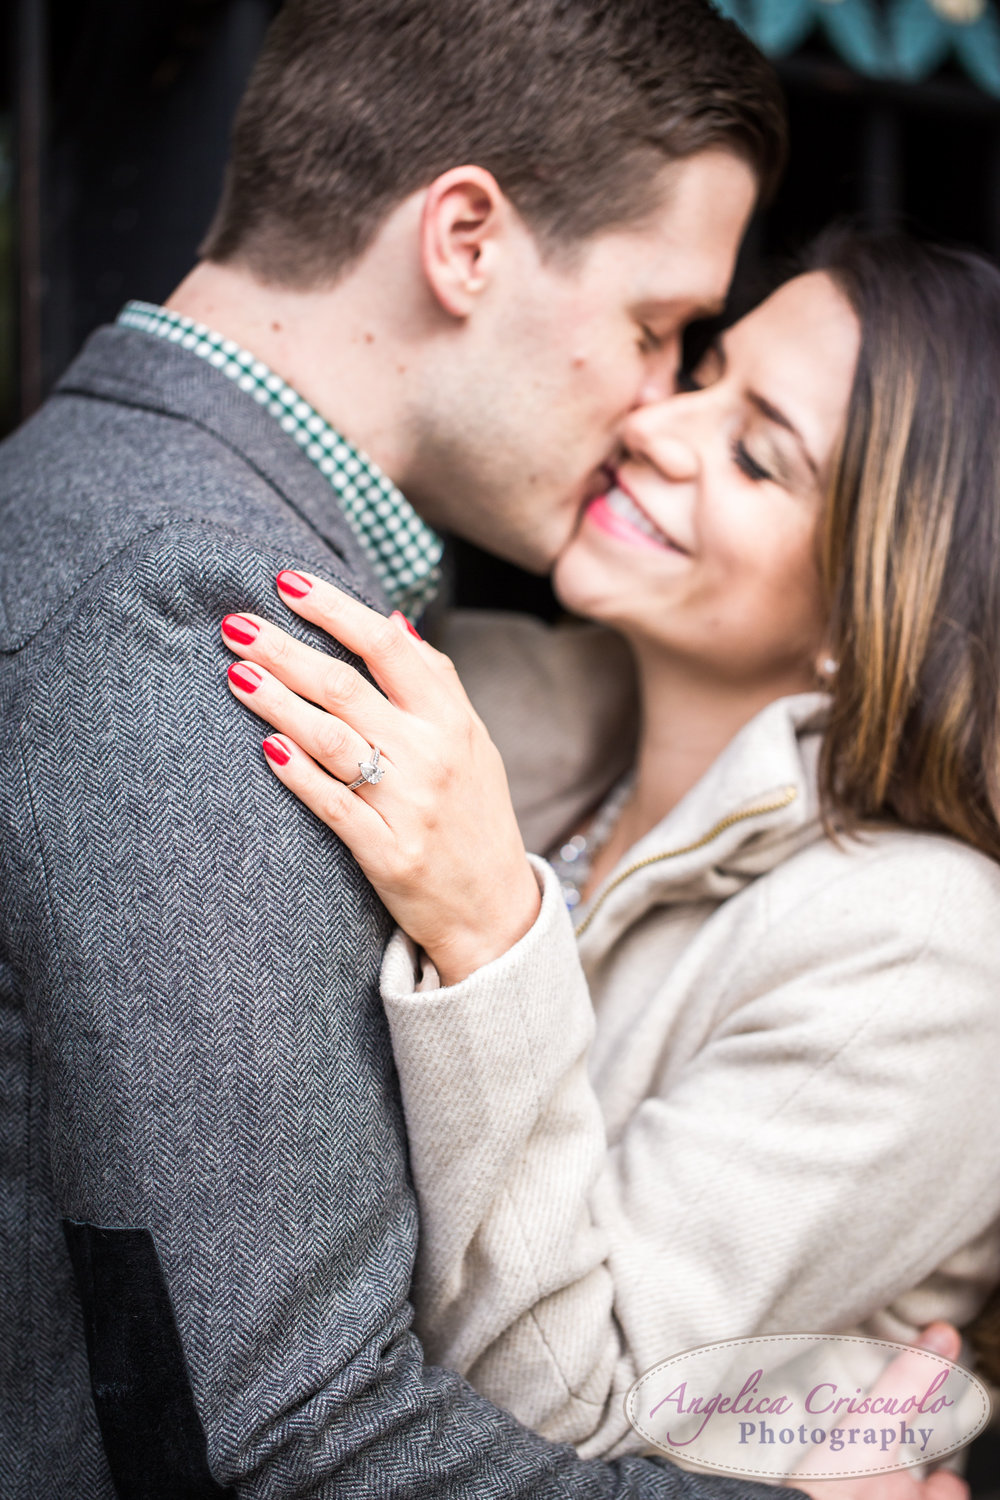 Engagement photo ideas with pear ring shape